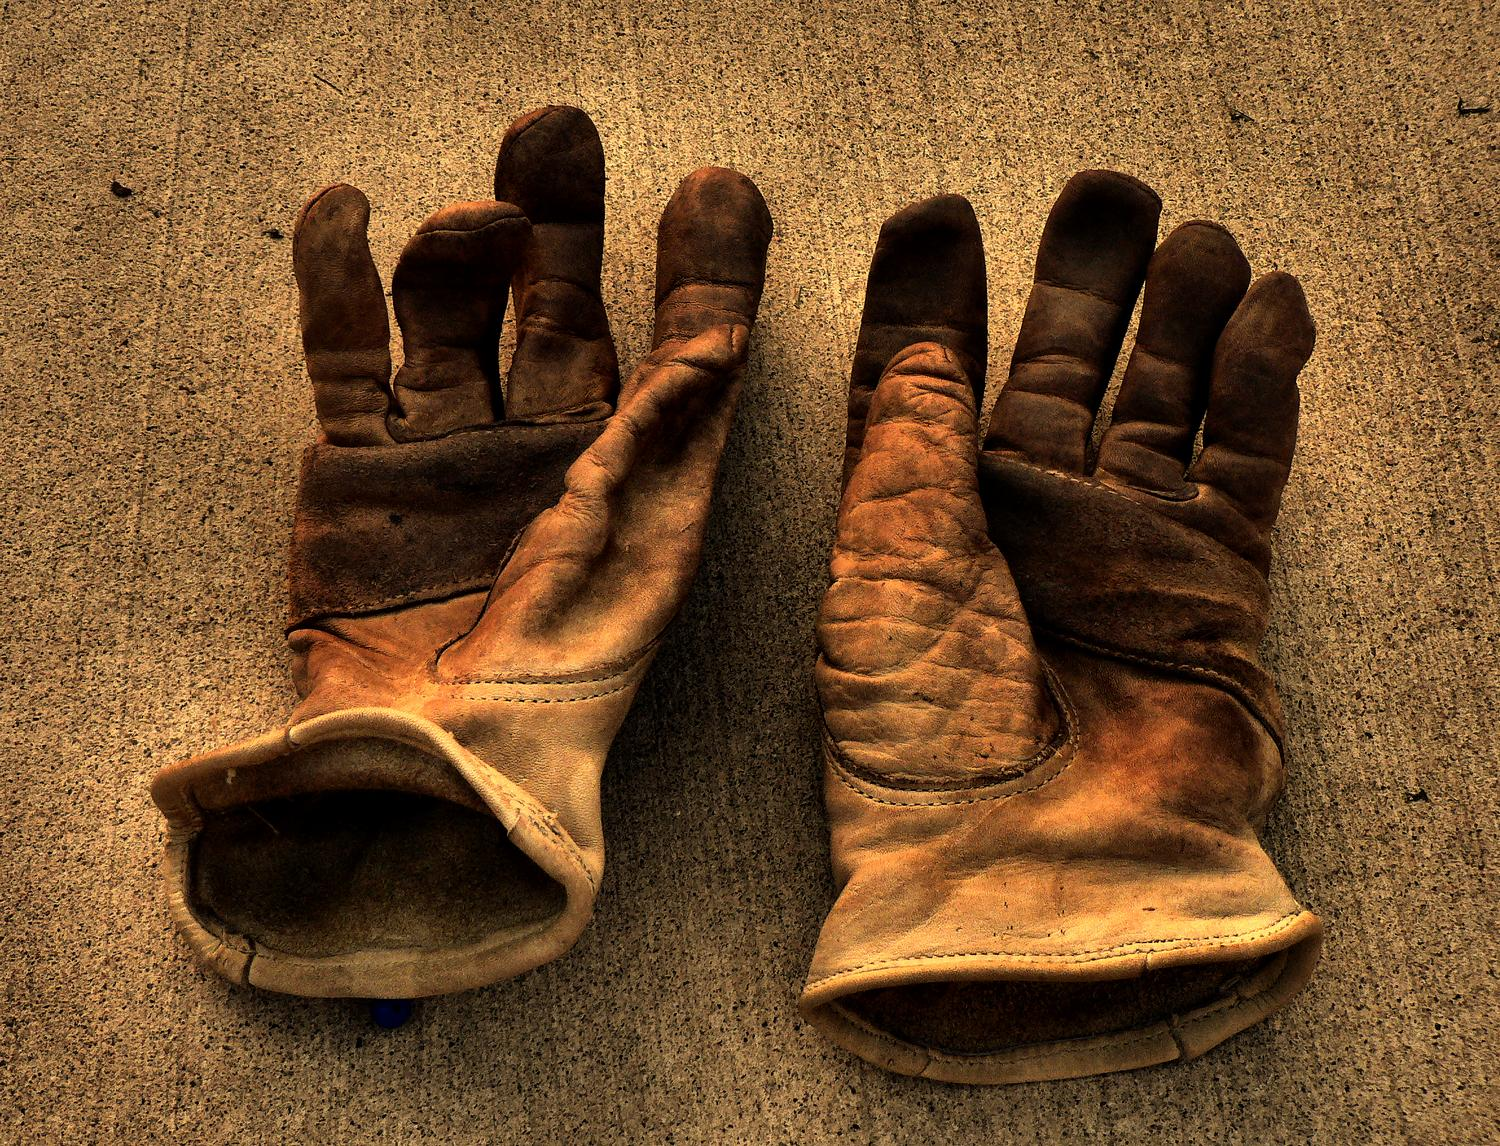 a pair of leather work gloves on cement - The Hobbitt's gloves - Tony Karp, design, art, photography, techno-impressionist, techno-impressionism, aerial photography , drone , drones , dji , mavic pro , video , 3D printing - Books -